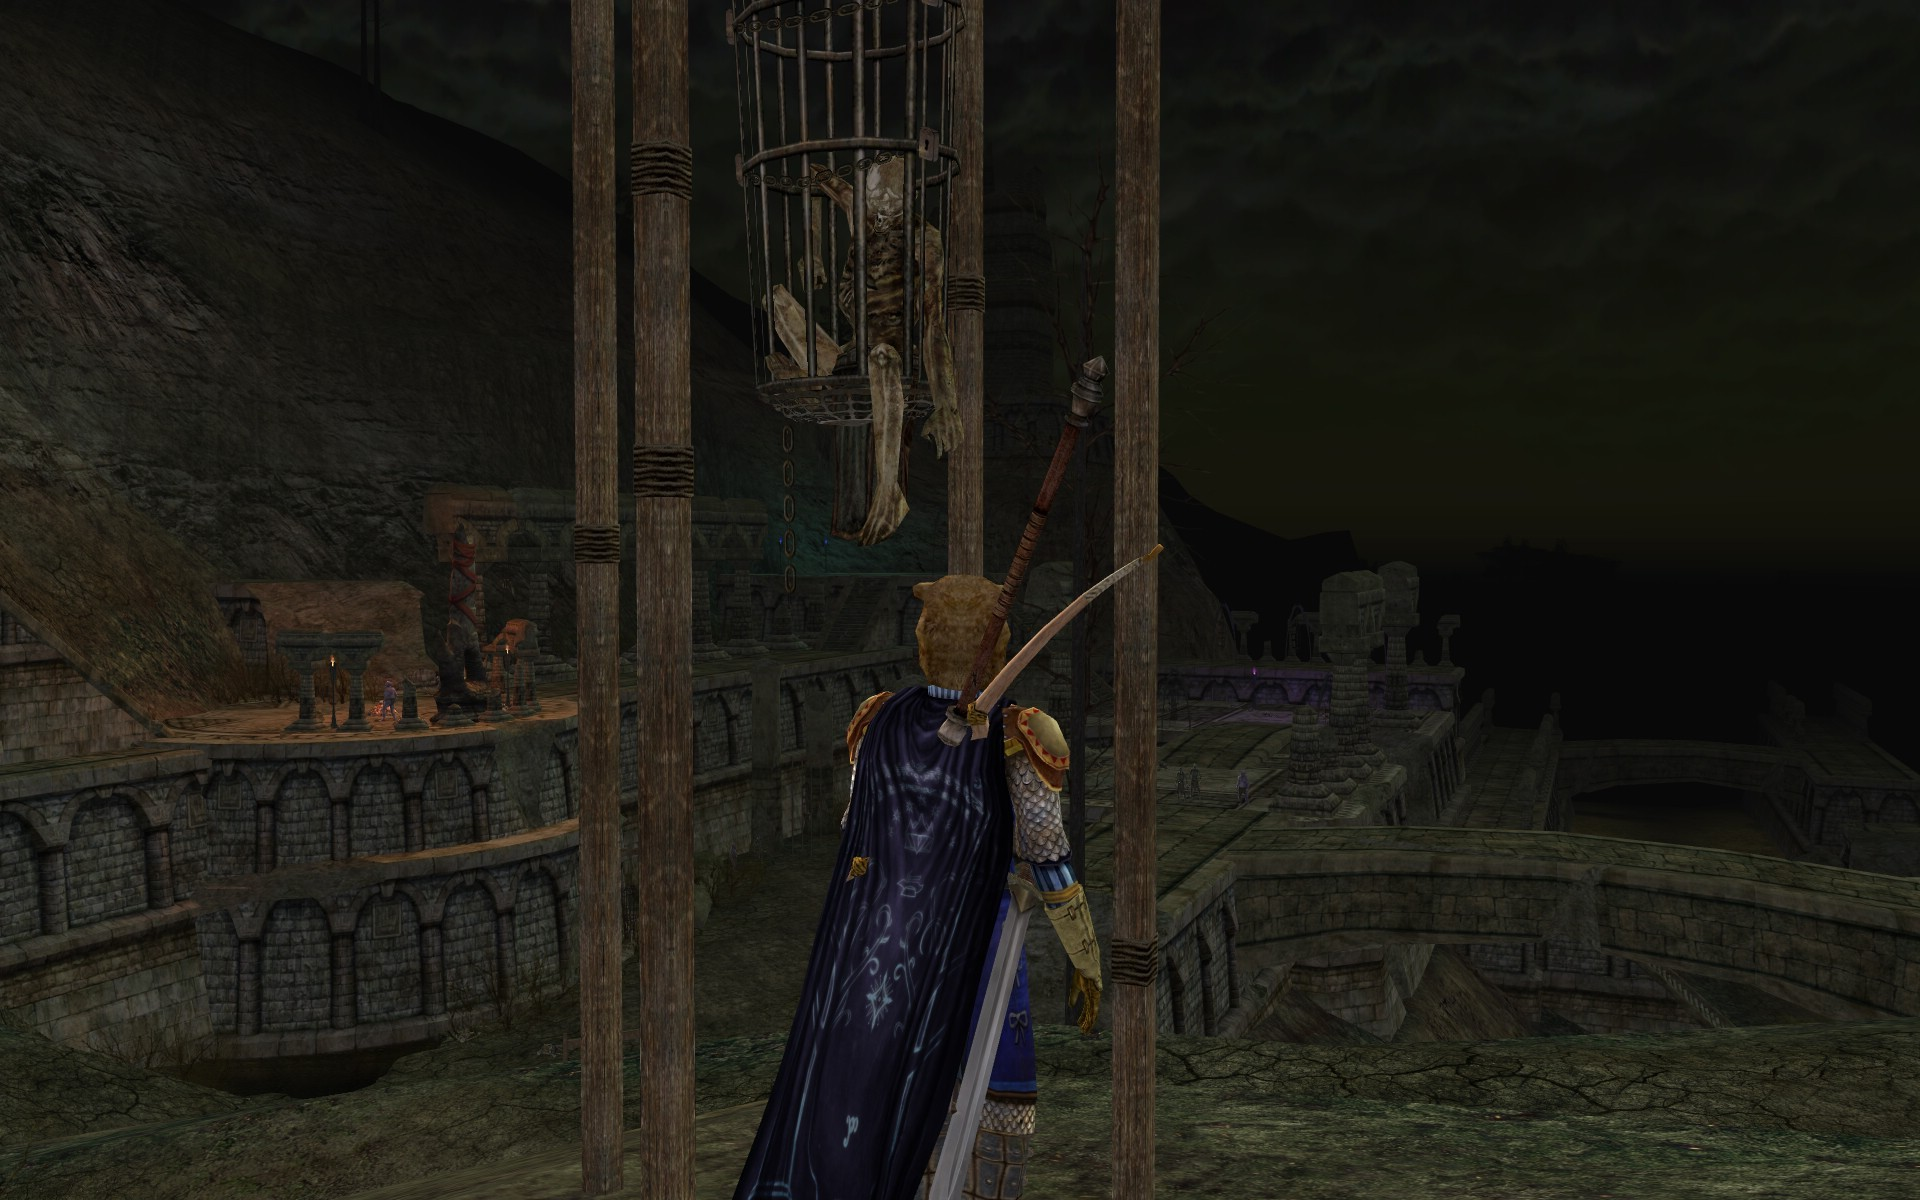 Lord of the Rings Online - this guy had a bad day